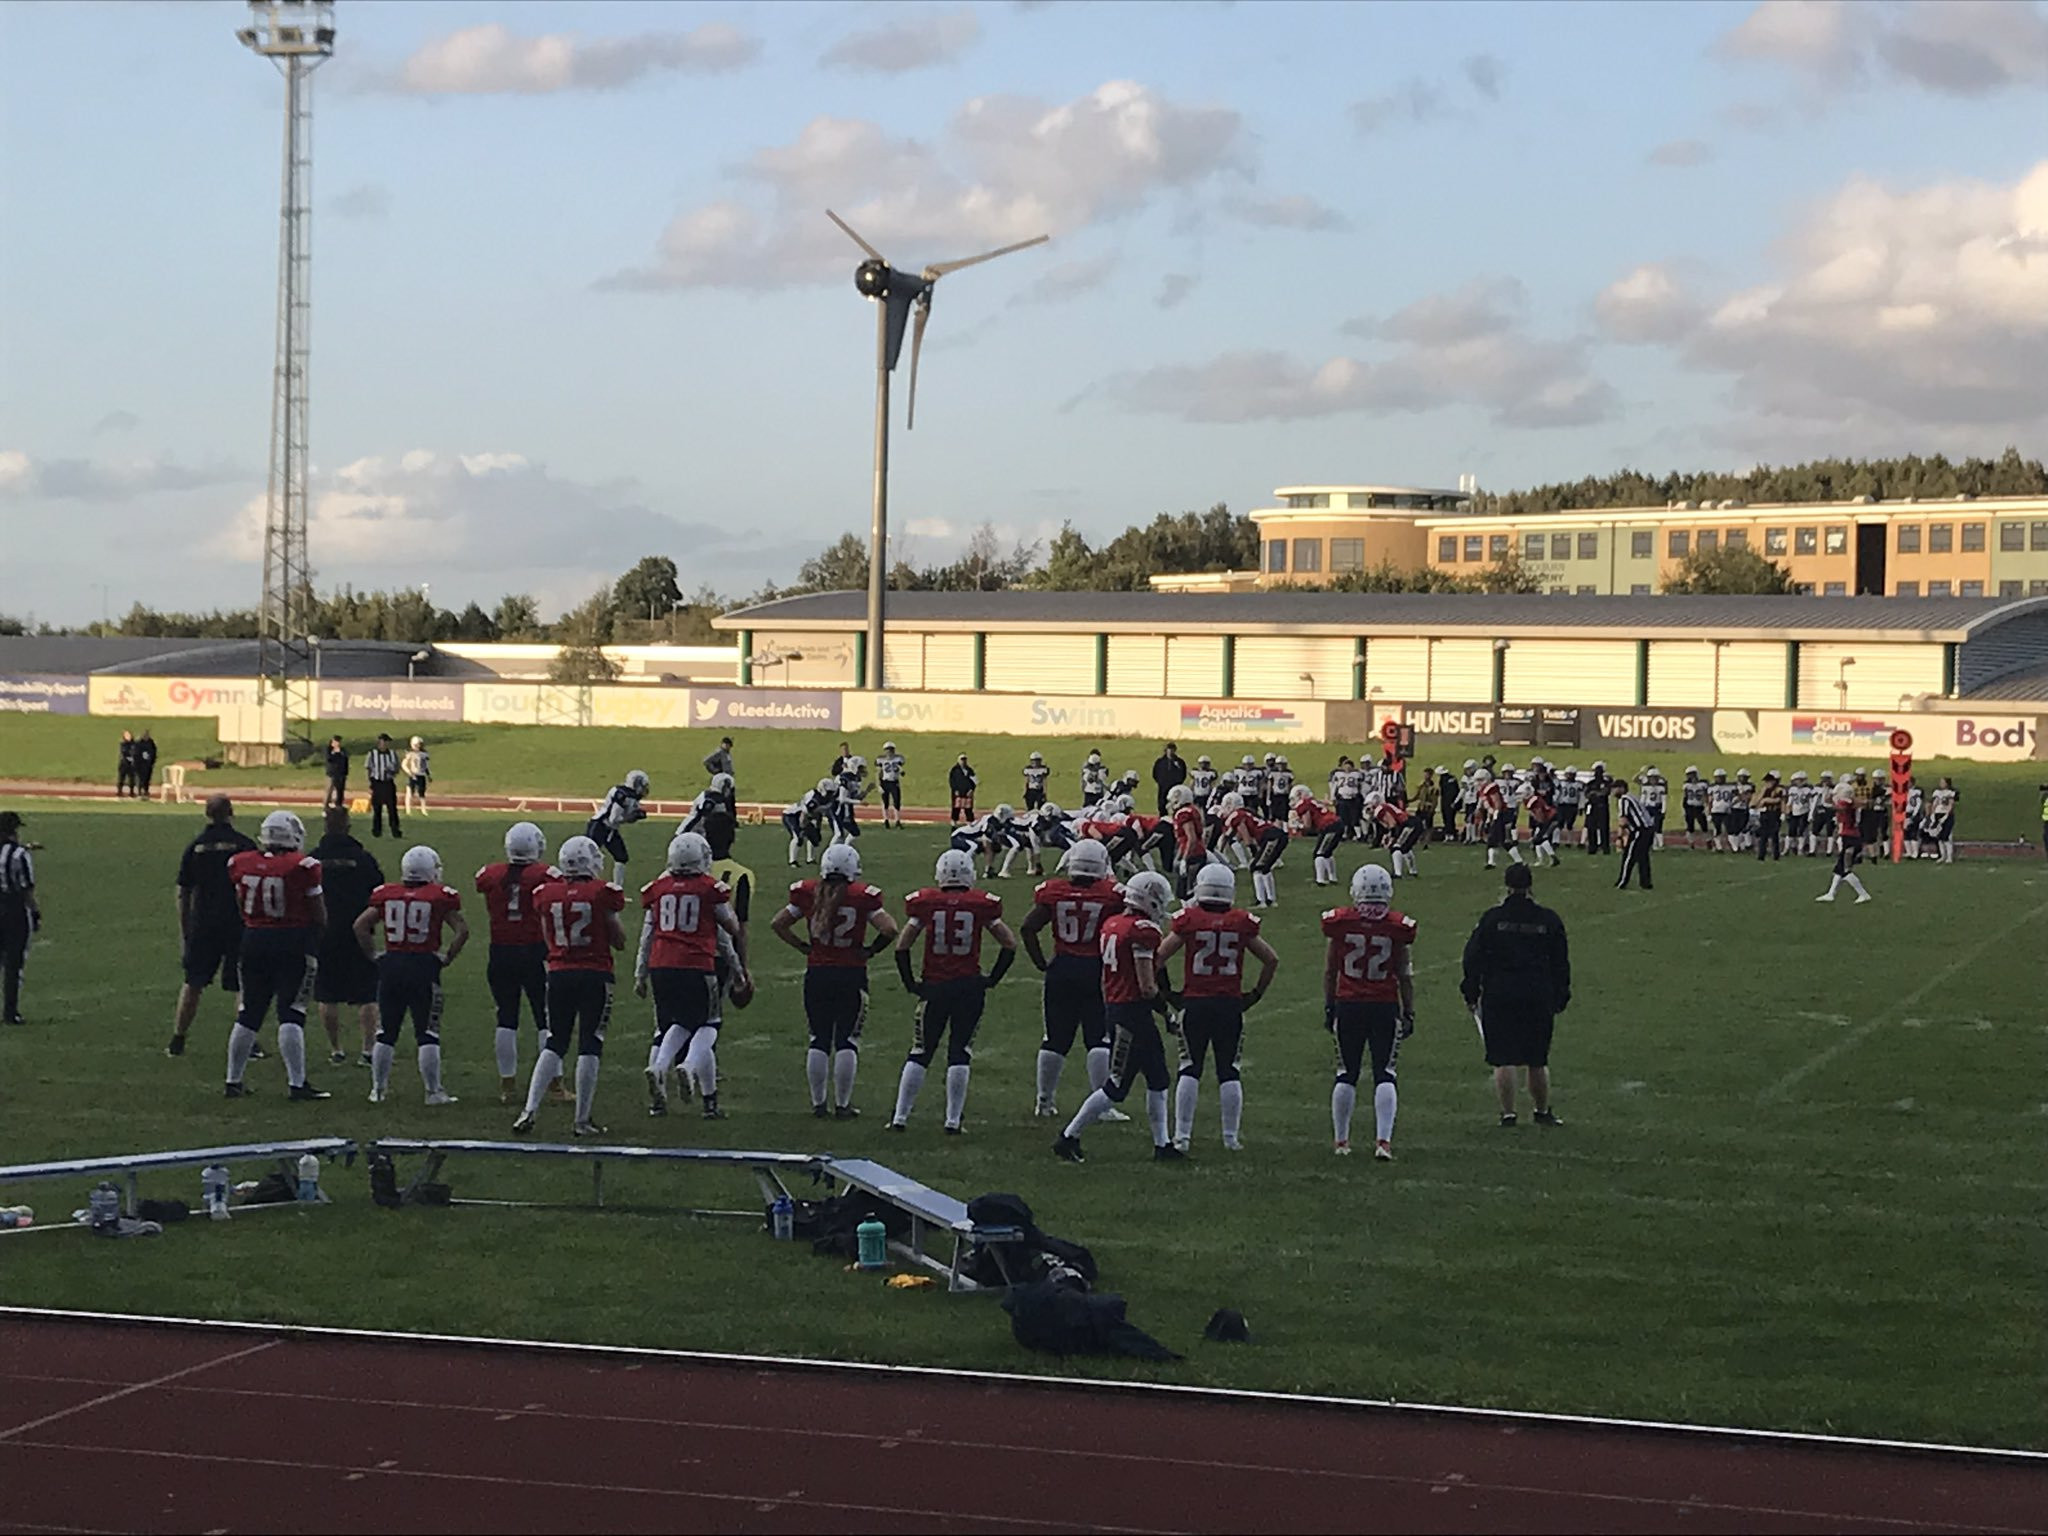 Finland retain Women's American Football European Championship crown despite loss to Britain